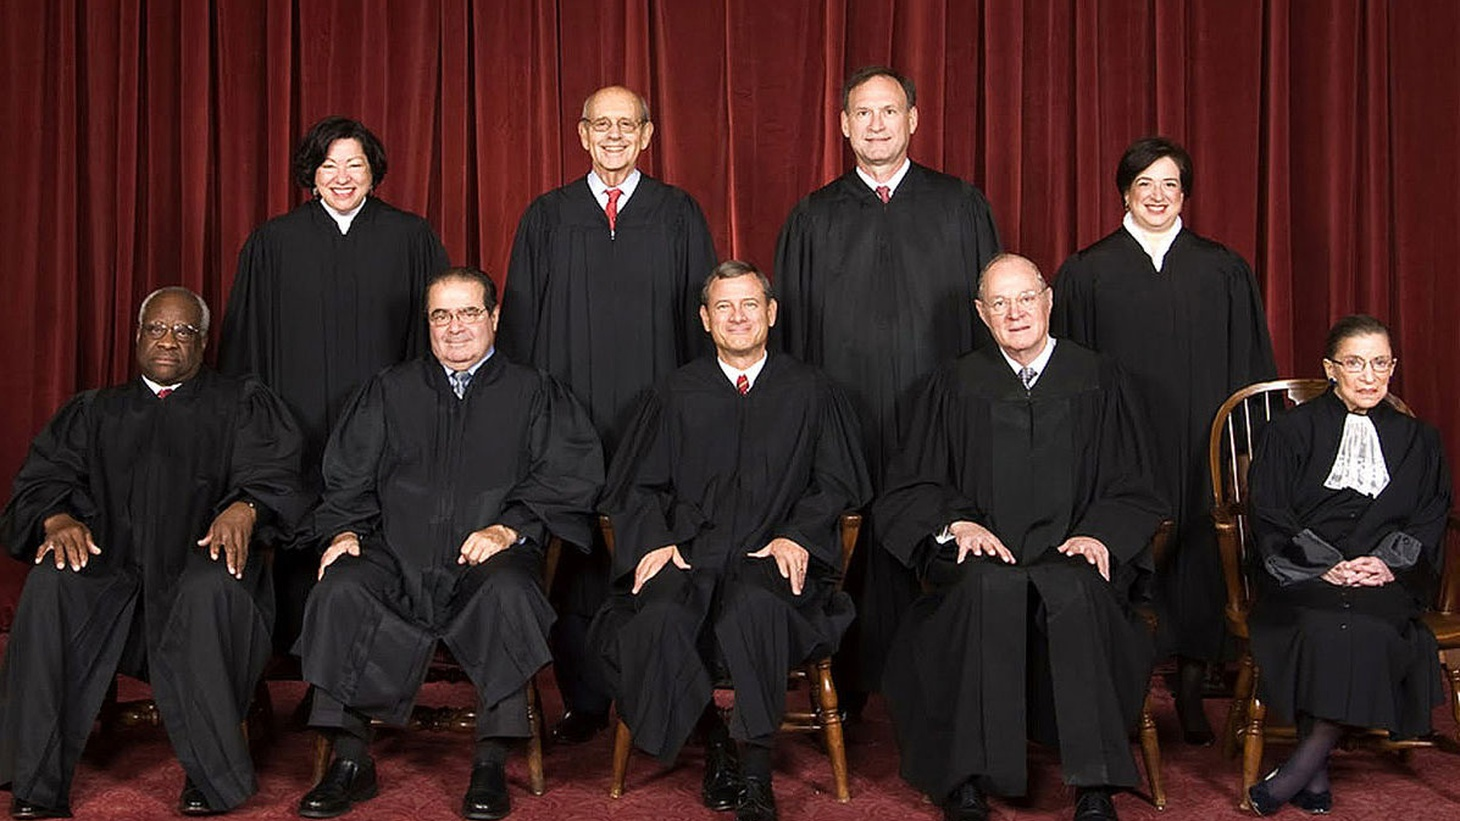 Major decisions are expected this month from a US Supreme Court more divided politically than ever before.